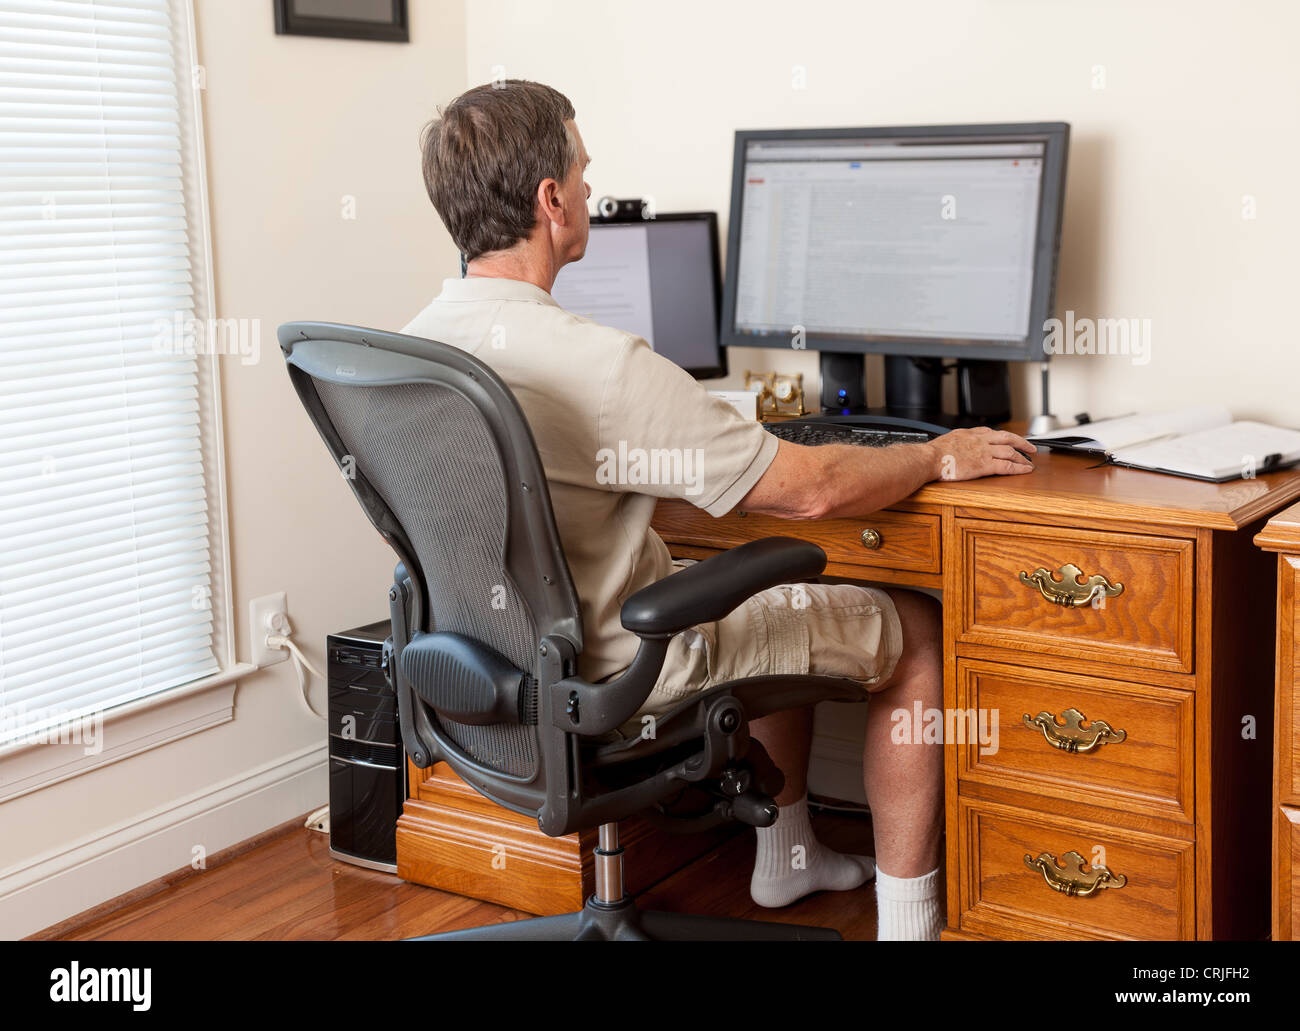 Man working from home office in shorts with desk with two monitors - Stock Image